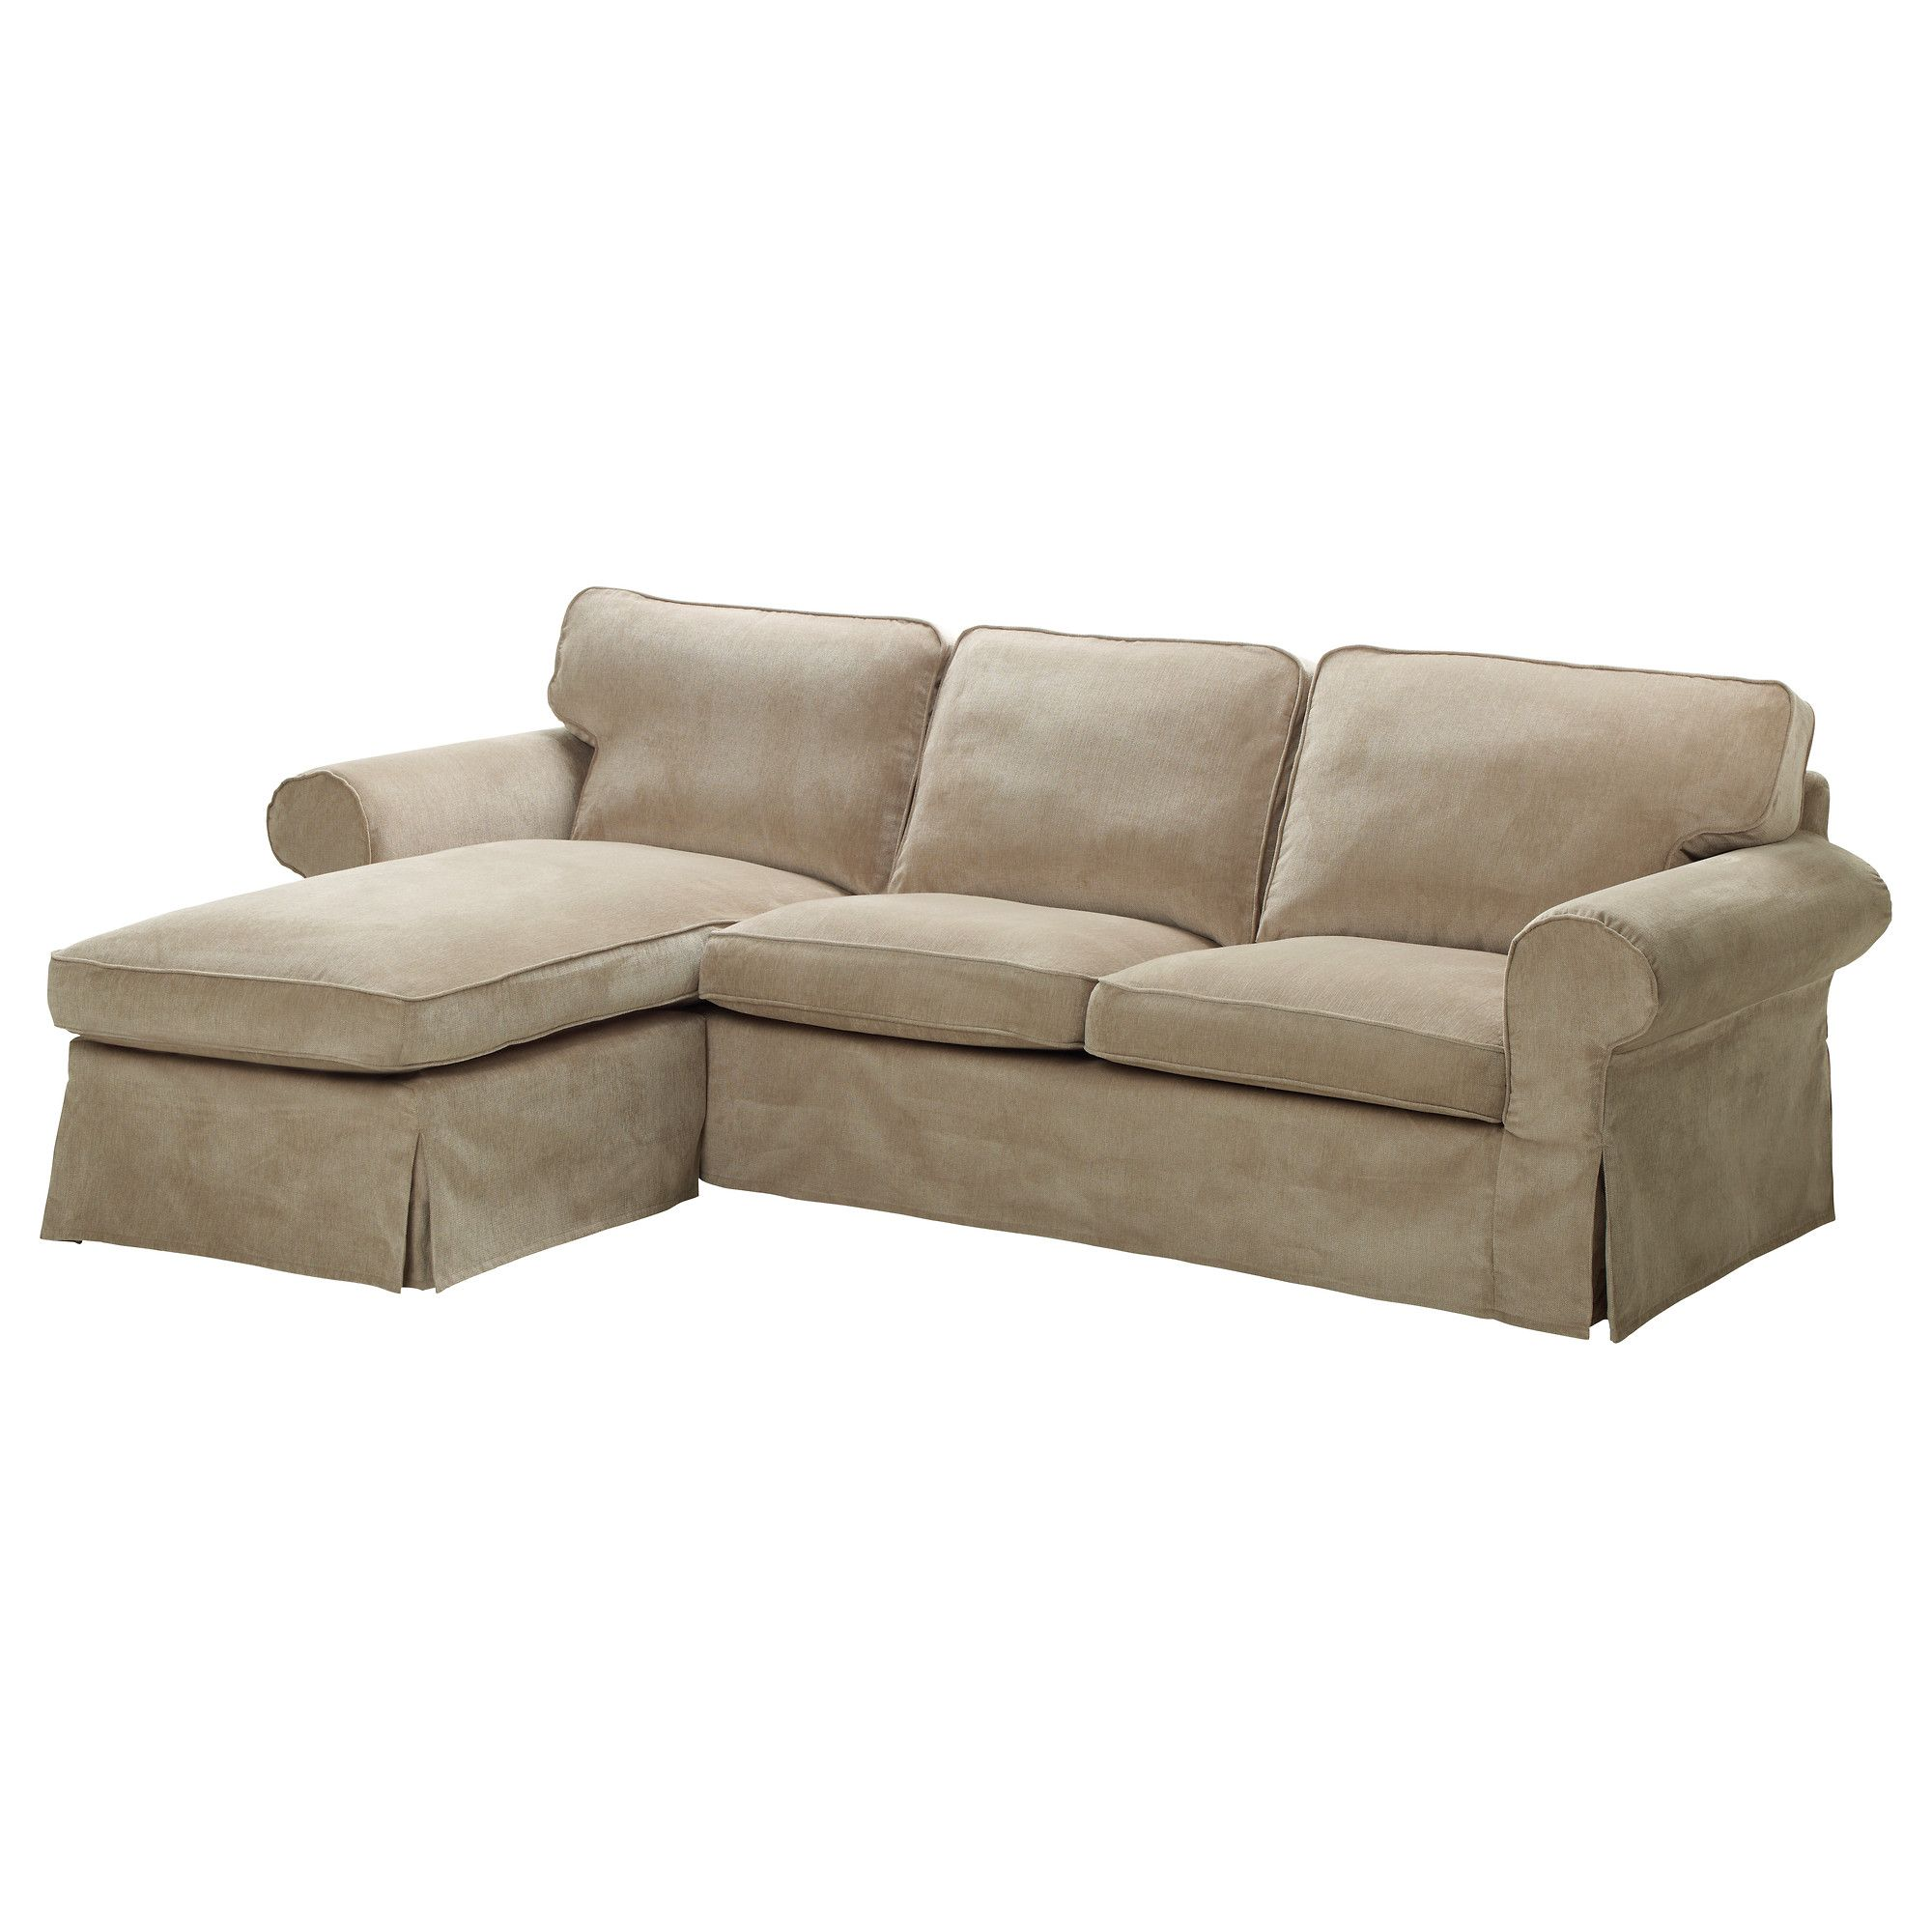 Ektorp Loveseat And Chaise Lounge  Vellinge Beige  Ikea